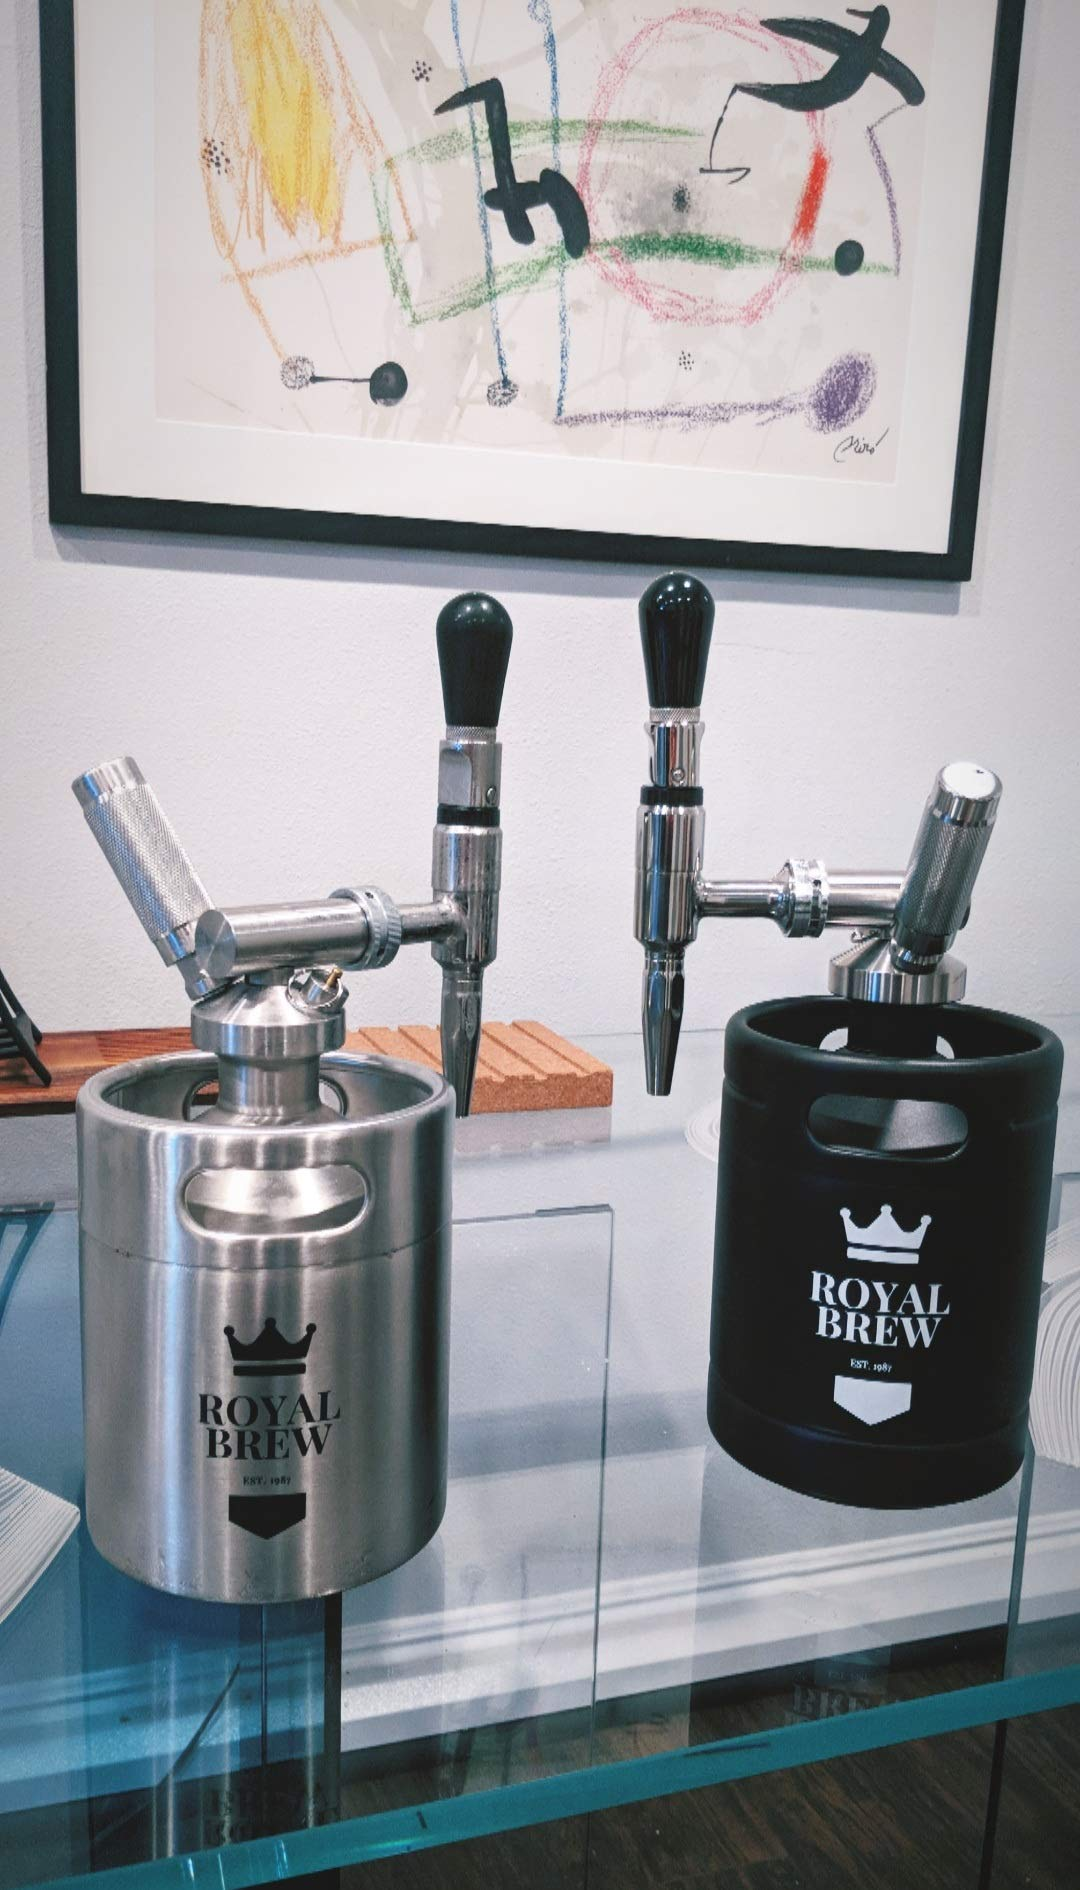 Stout Beer Faucet 304 Food Grade Stainless Steel - Nitrogen Draught and Nitro Coffee Faucet by Royal Brew by Royal Brew (Image #8)